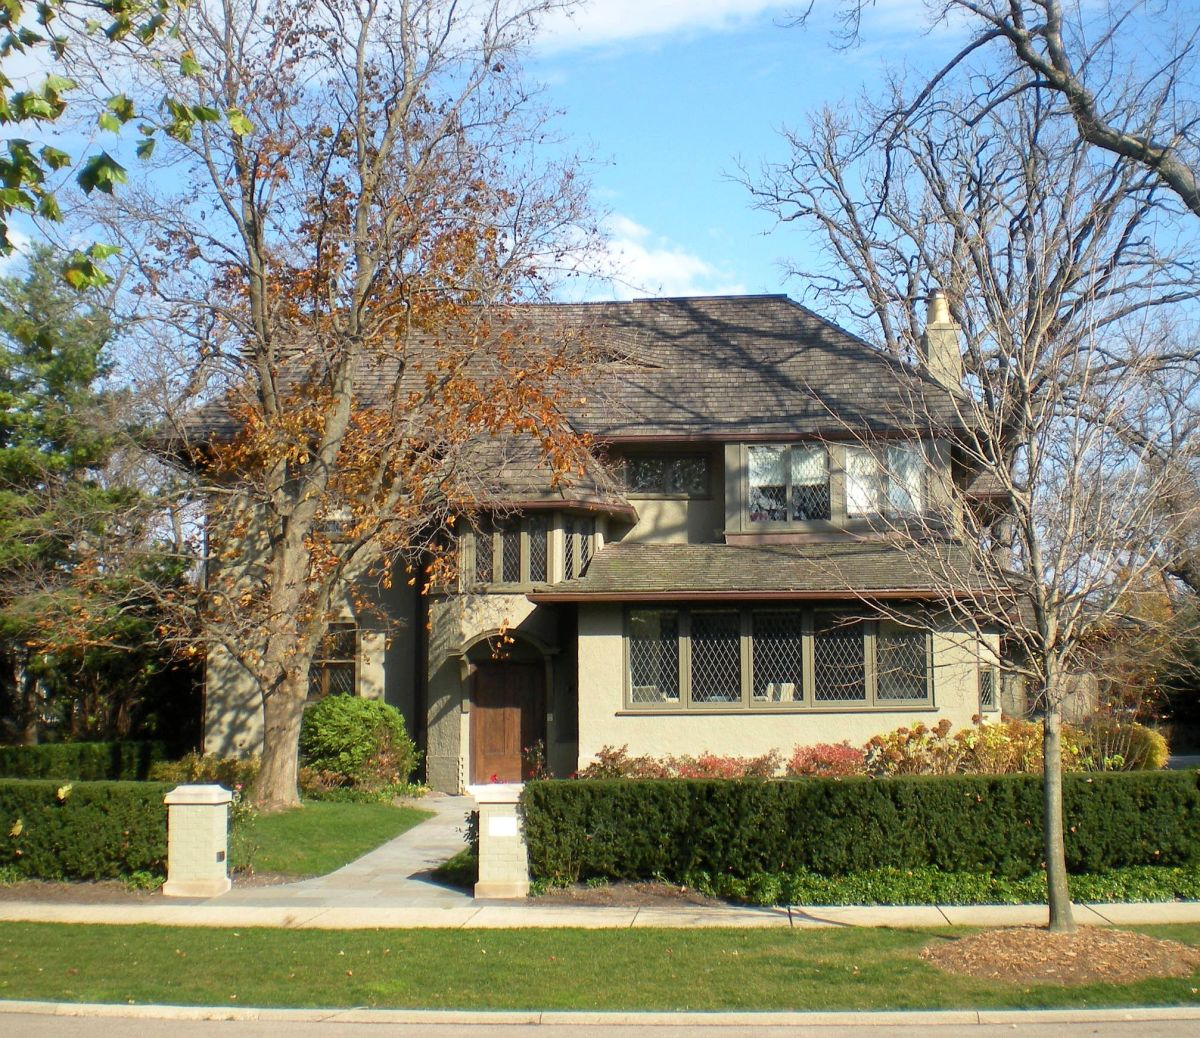 Manuel B. Hart House (circa 1907) at 315 Abbotsford Road, attributed to George W. Maher.